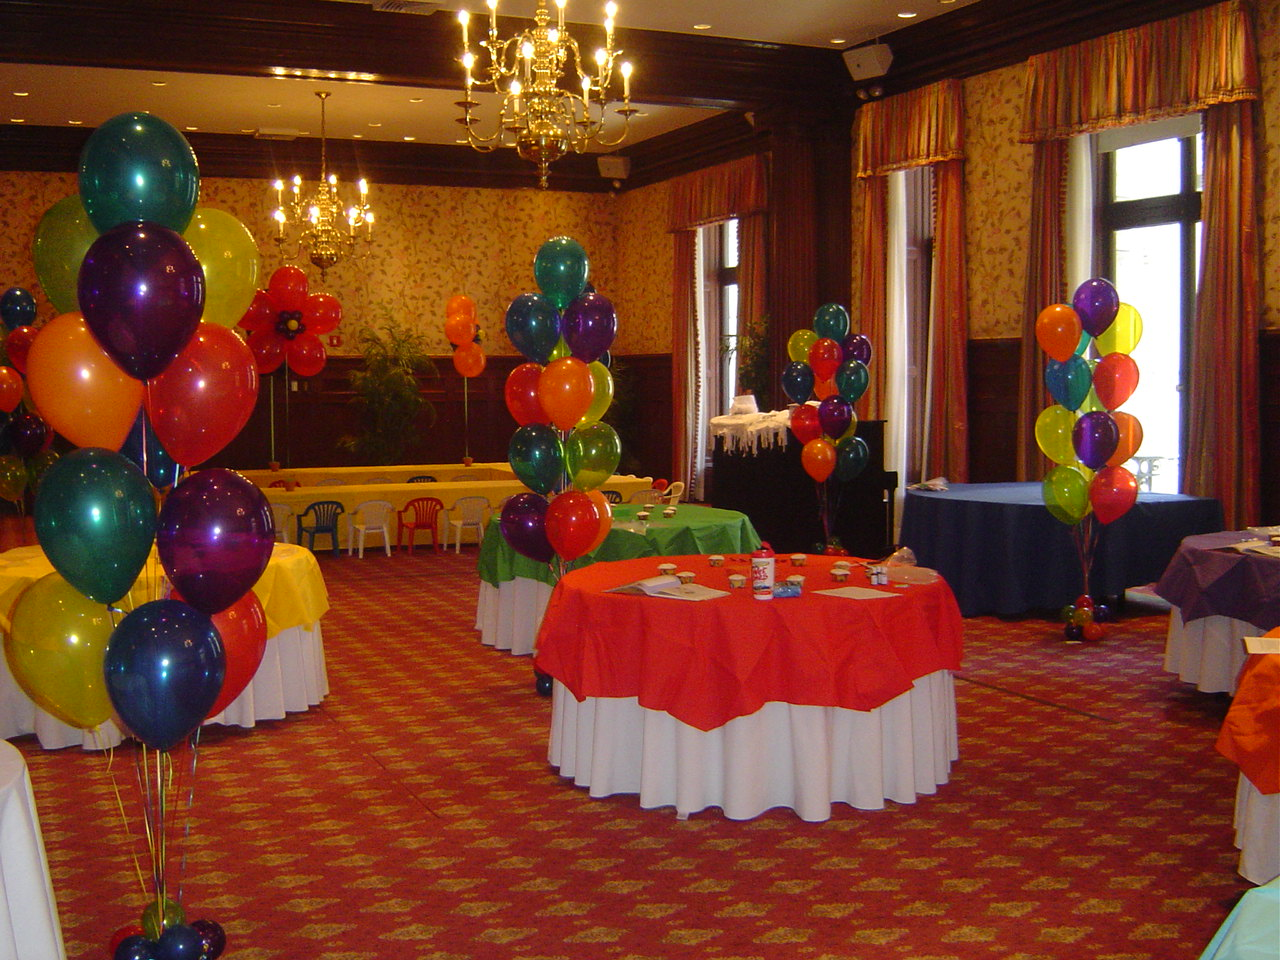 Curtains Bedroom Ideas The Party Times Decorate A Cake With Rainbow Colors